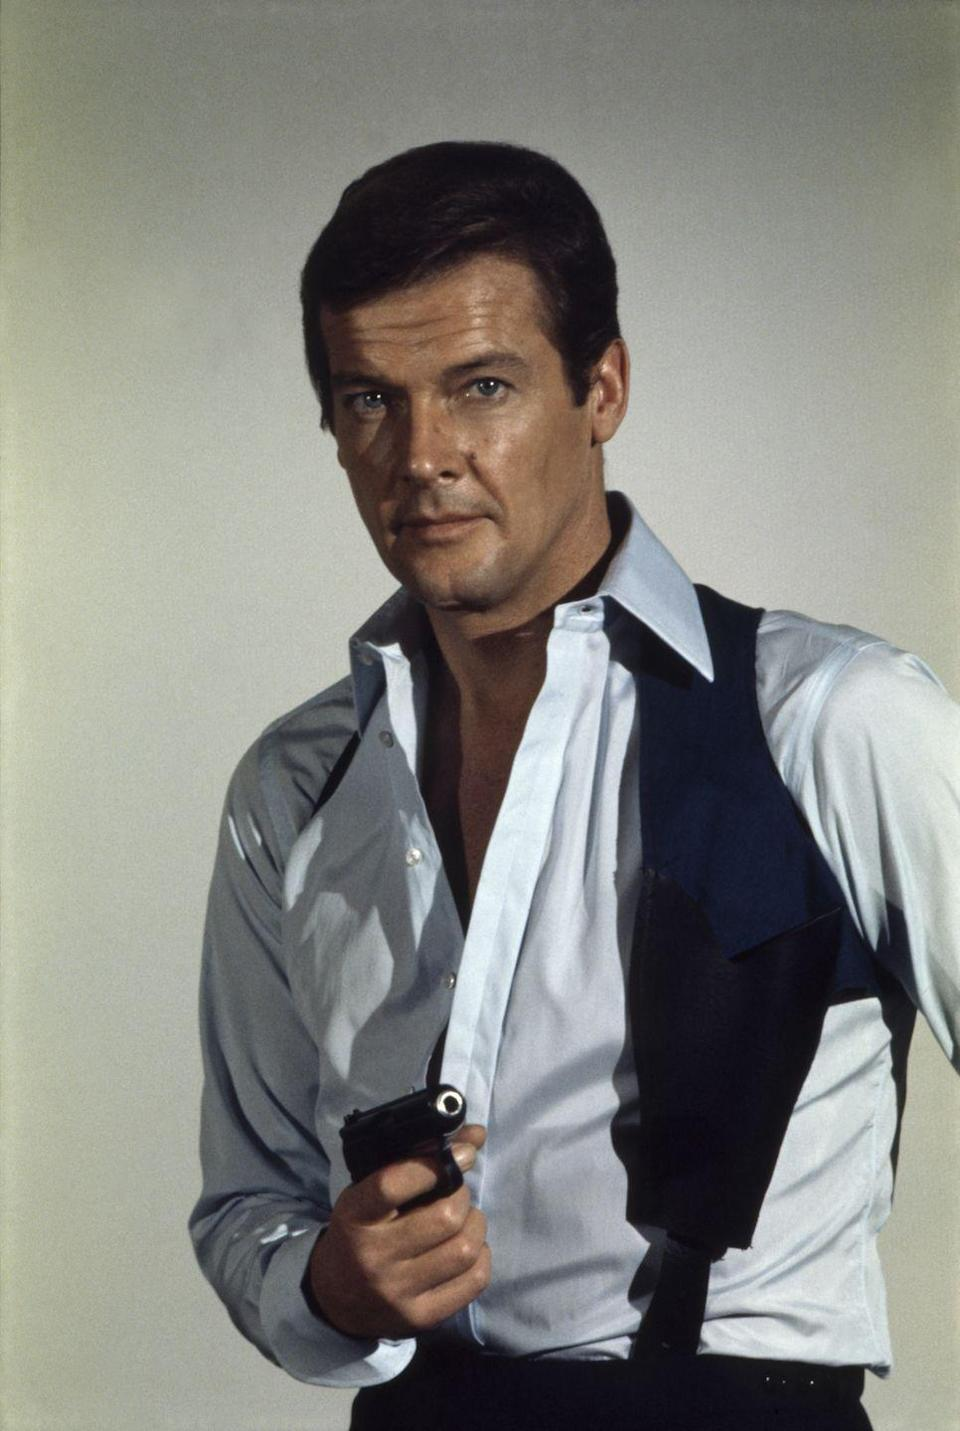 <p>His portrayal of Bond was the furthest from Fleming's vision, which is why—despite a few shortfalls—his is the best version of the role. Moore brought a lightness and even absurdity to the movies. (In <em>Octopussy</em>, he defuses a bomb while dressed as a clown.) It was perfect for the 1970s. He was also the longest-serving Bond, having taken over the role in 1973 and playing the part until 1985. By the early '80s, he was probably too old and out of shape to be playing Bond, but even so, his stewardship of the part helped turn the franchise into the juggernaut for which it's known today.</p><p><strong>Standout Film:</strong> <em>Live and Let Die</em></p>